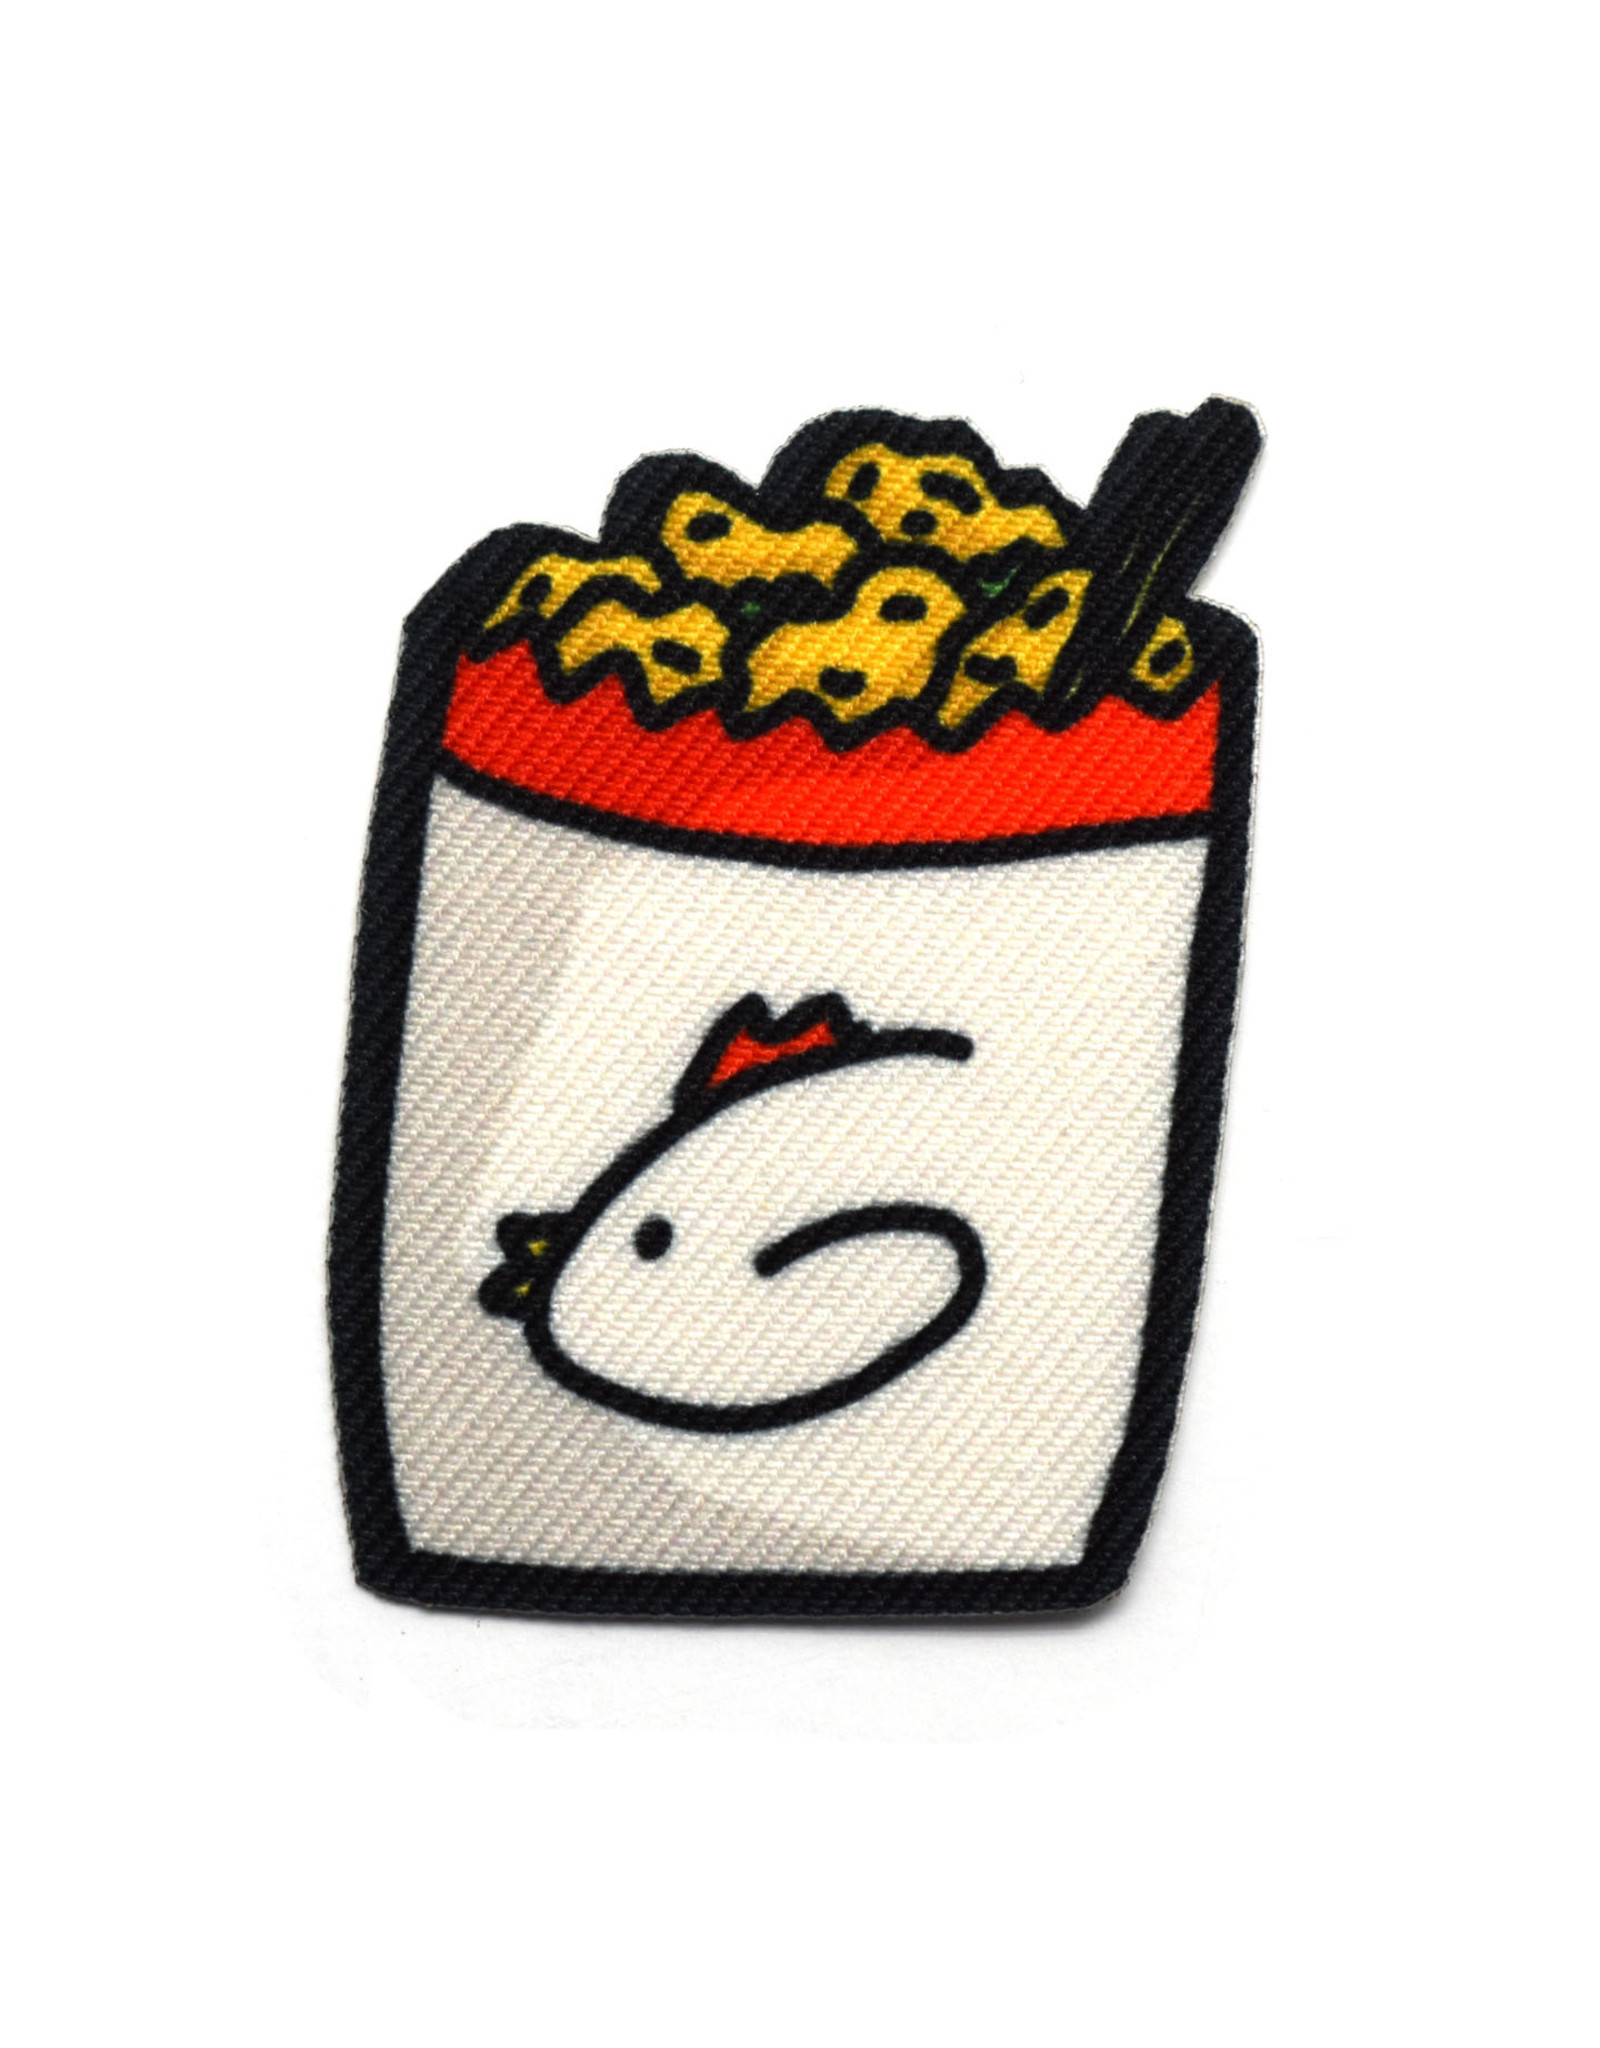 Pepper Popcorn Chicken Sticker Patch